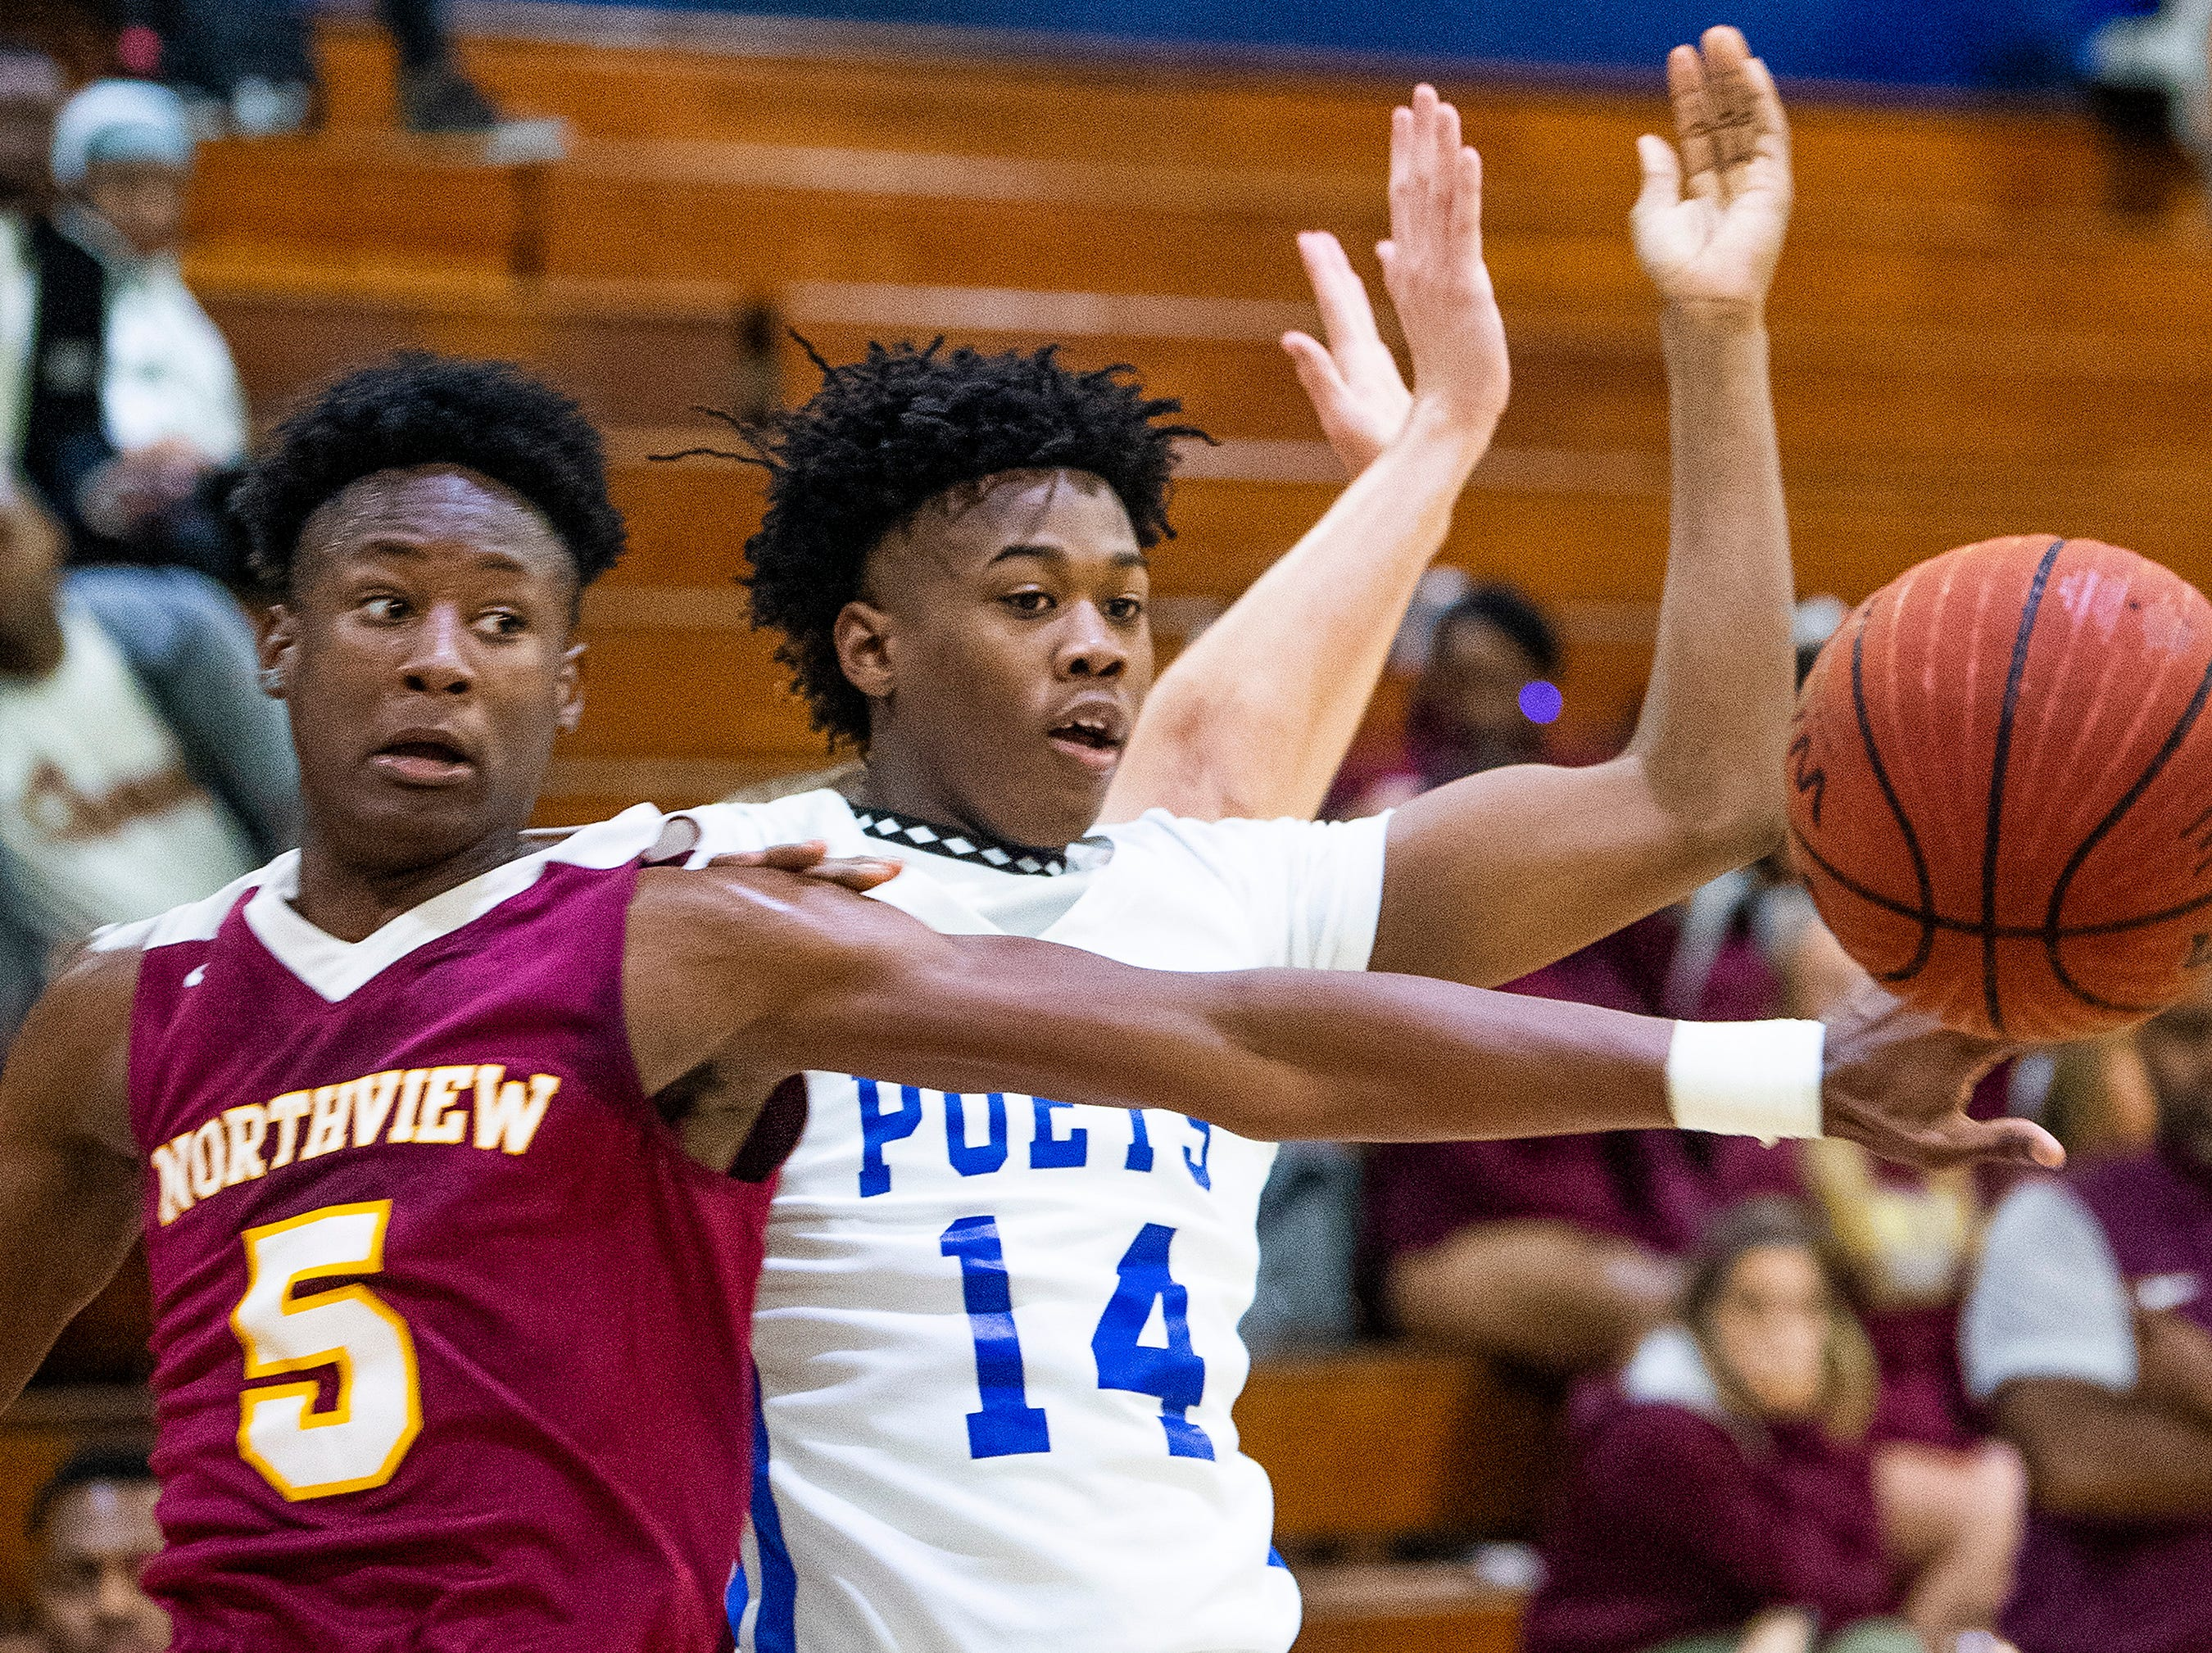 Lanier's Elijah White (14) and Northview's Christopher Shakleford (5) go after the ball at the Lanier campus in Montgomery, Ala., on Tuesday February 12, 2019.